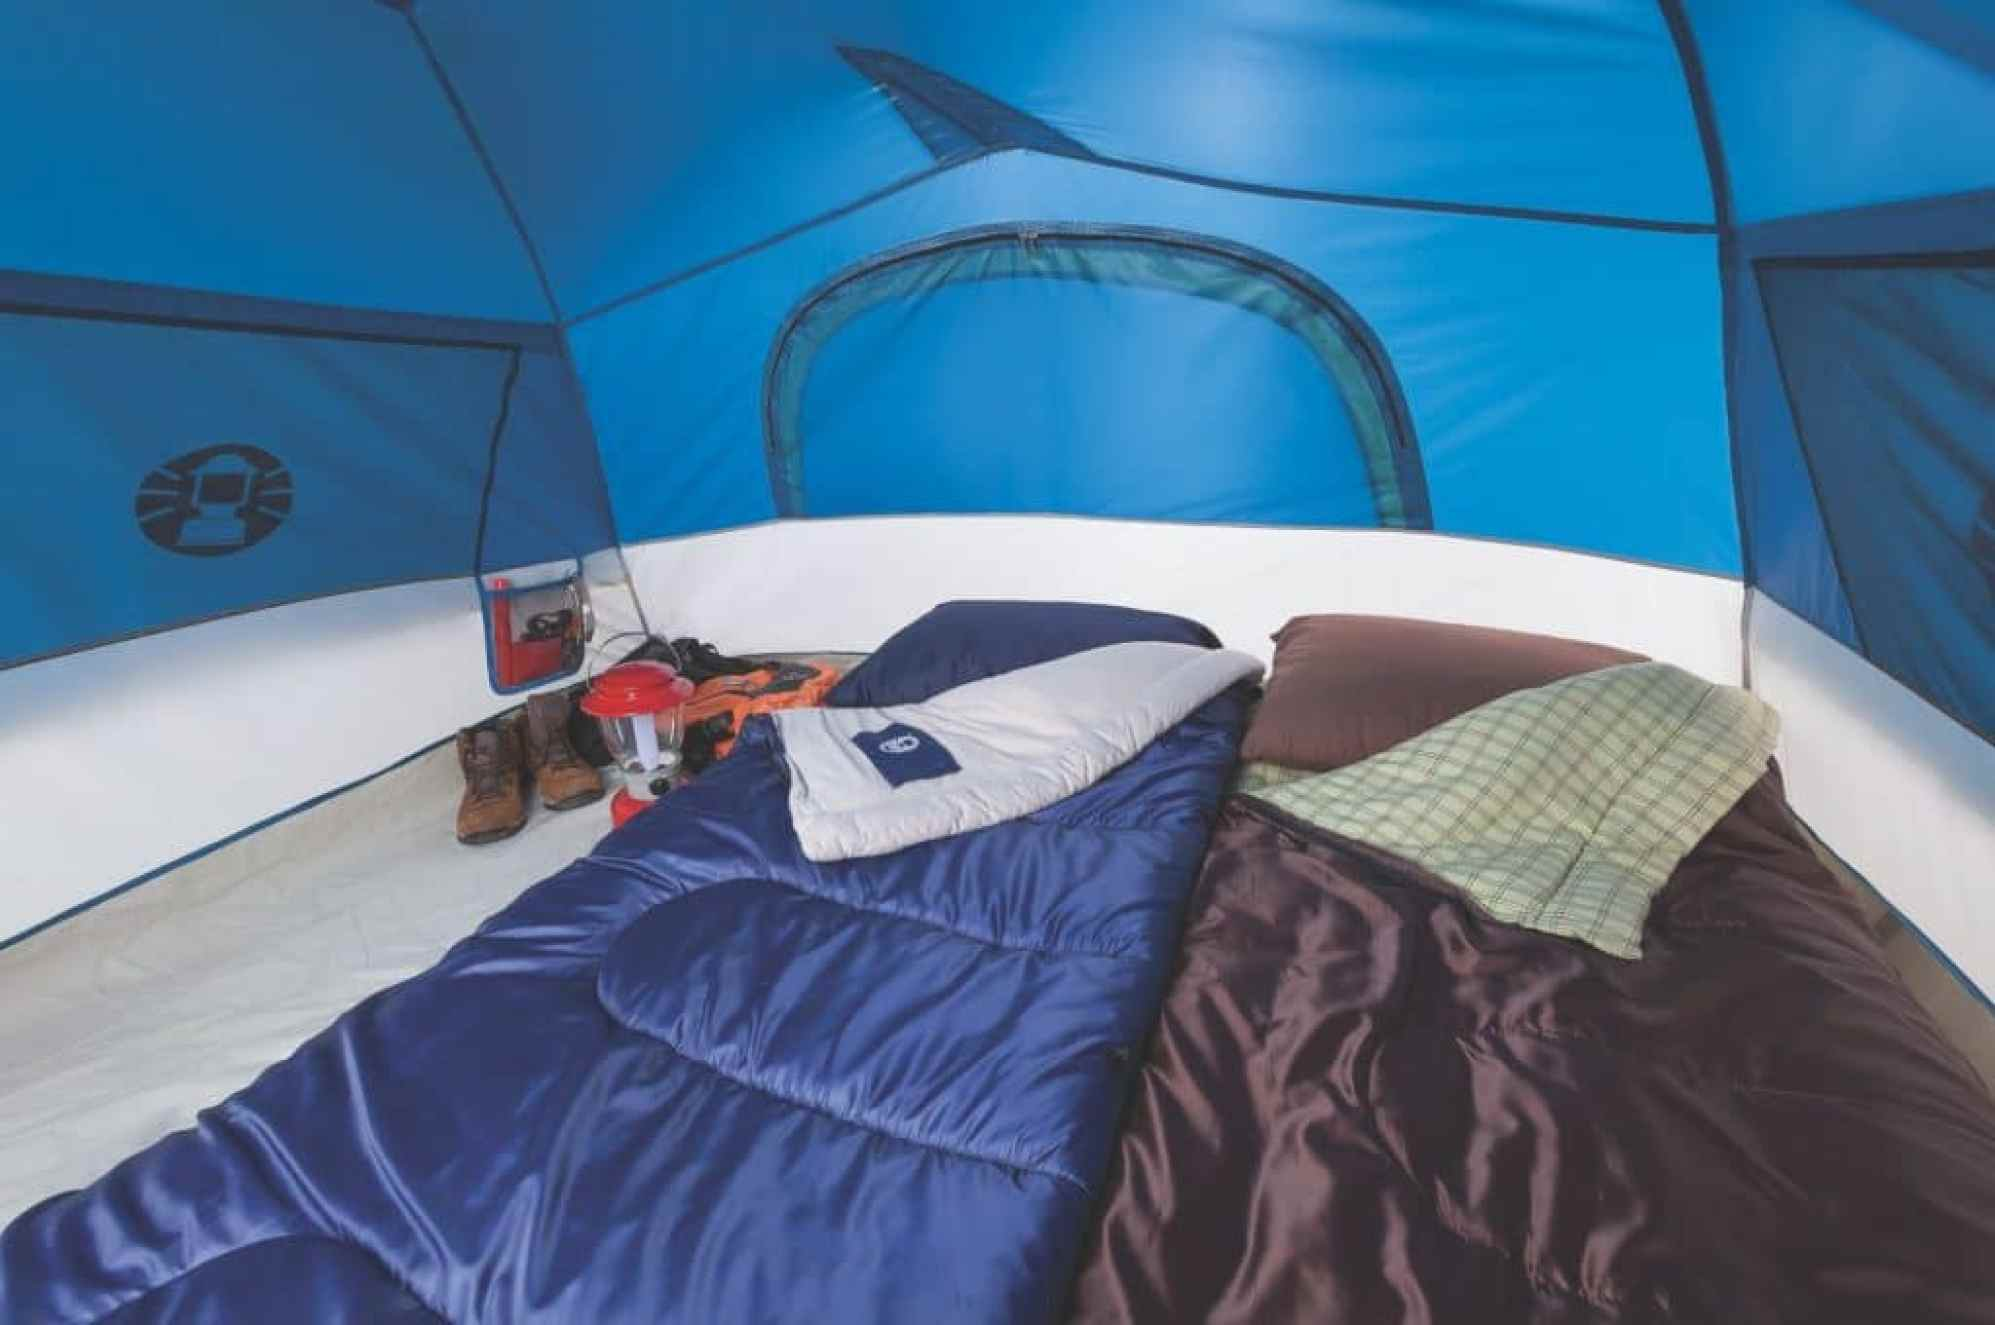 Coleman 4 Person Sundome Tent interior